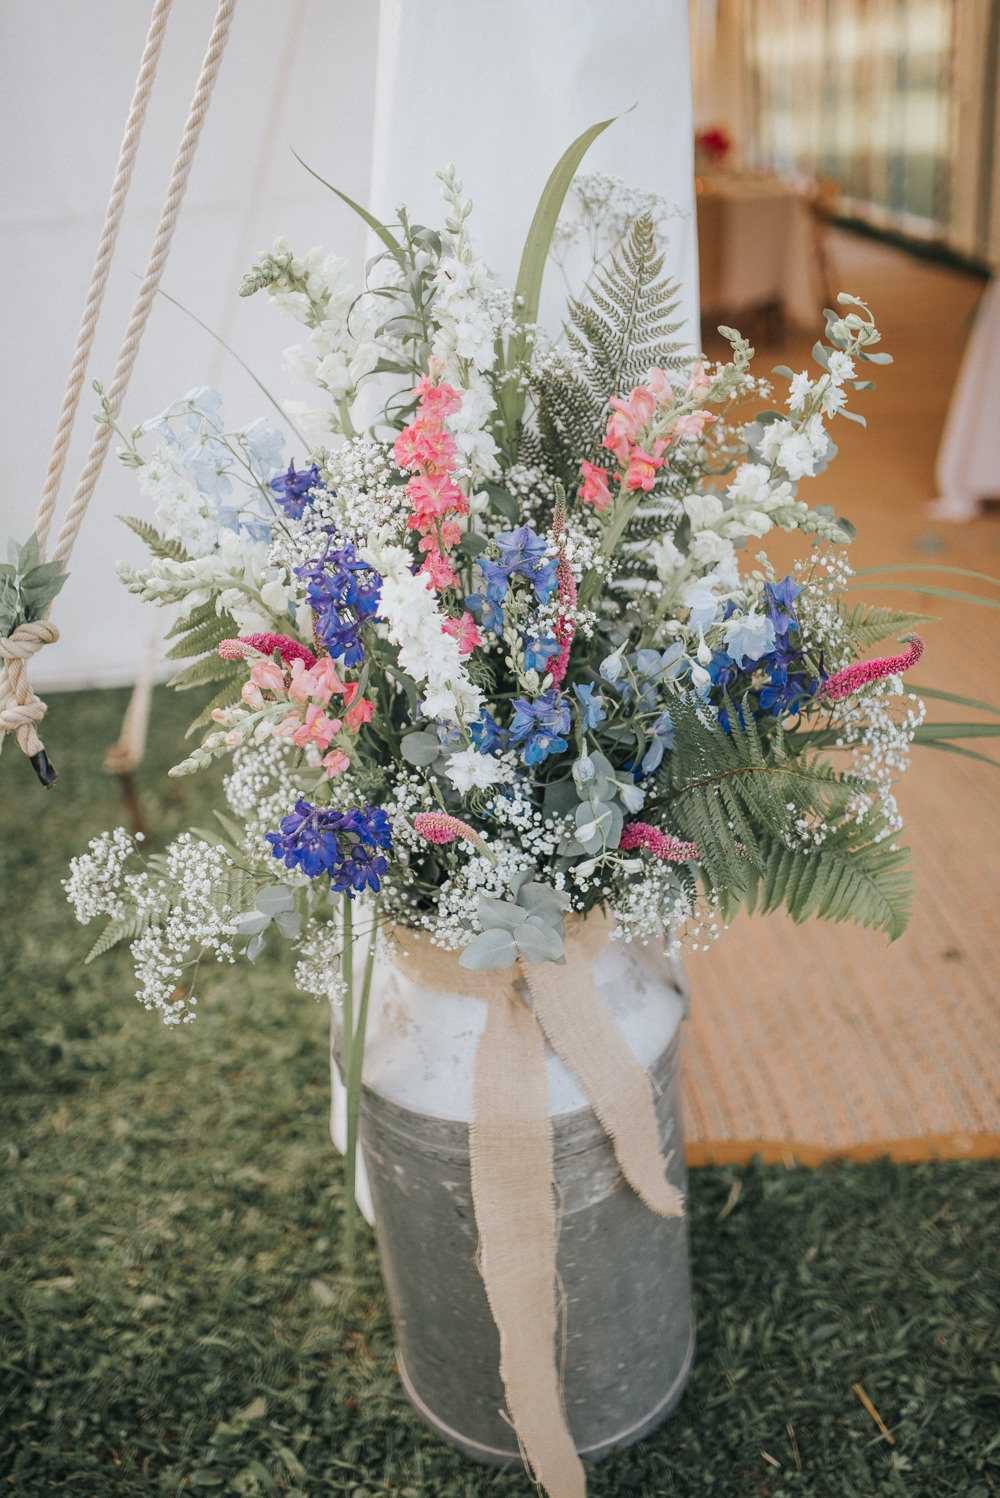 Milk Churn Flowers Summery Gyphophila Pink Blue Grenery Hessian Countryside Wedding Cotswolds Kate Waters Photography